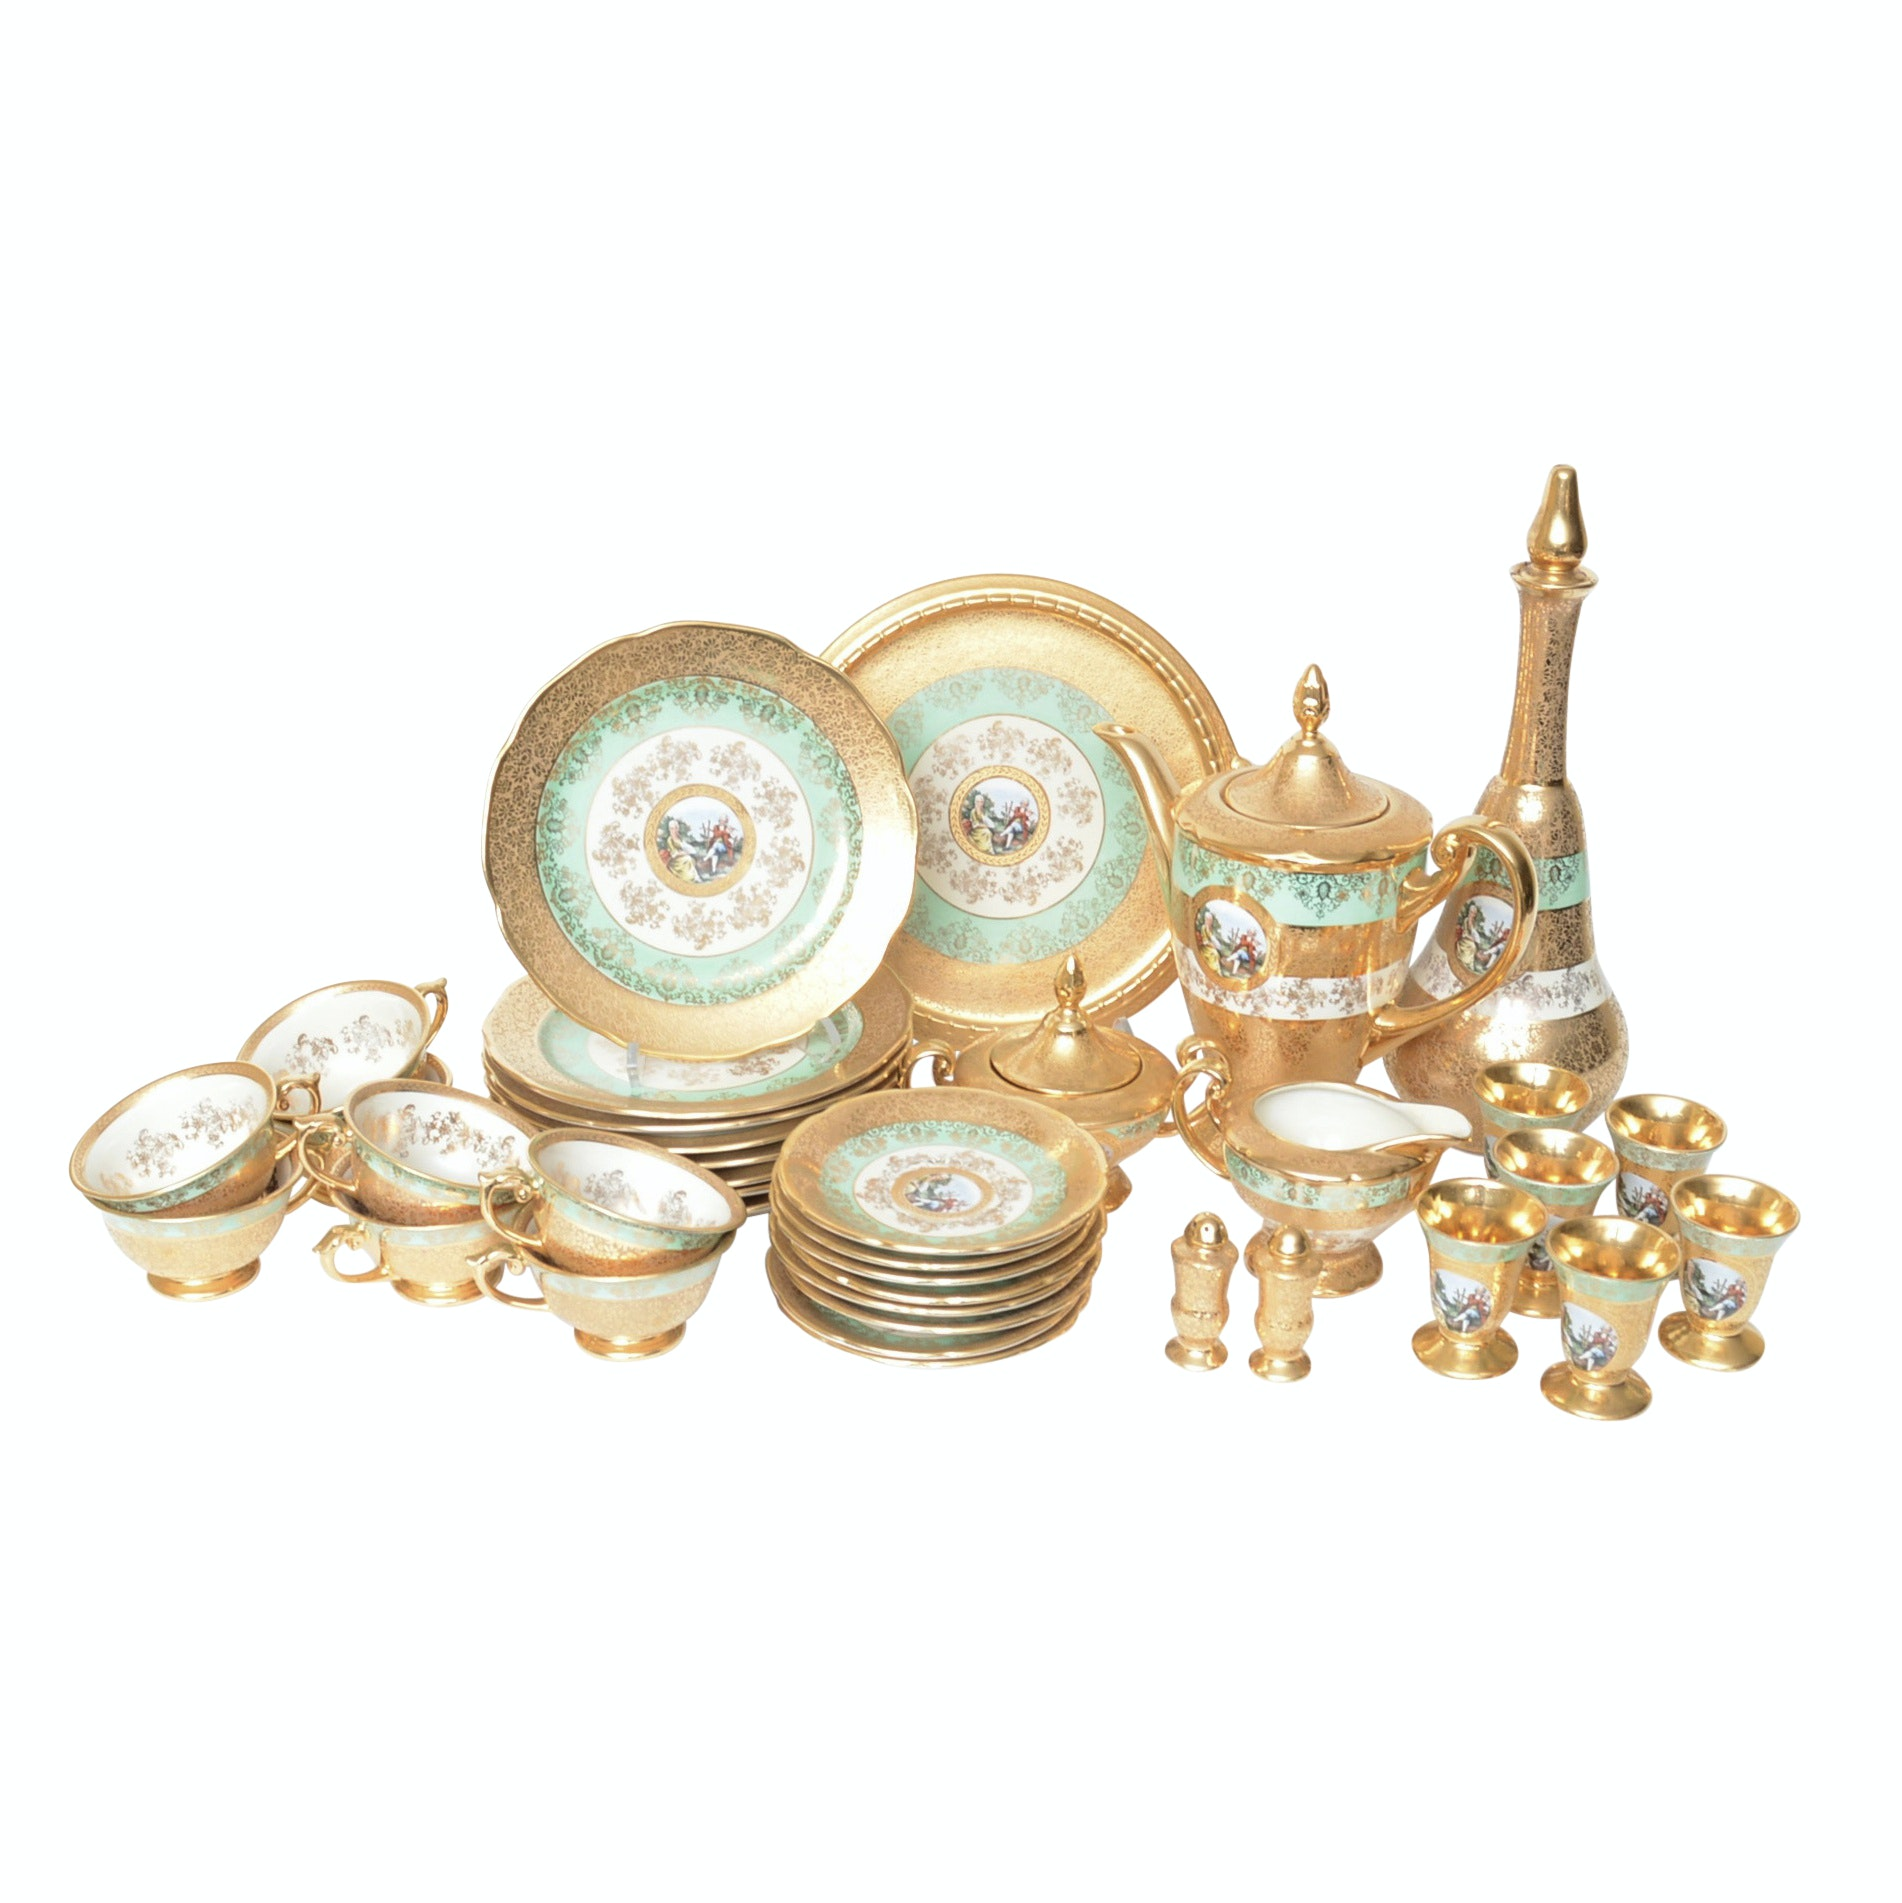 Le Mieux China Hand Decorated 24K Gold Accented China